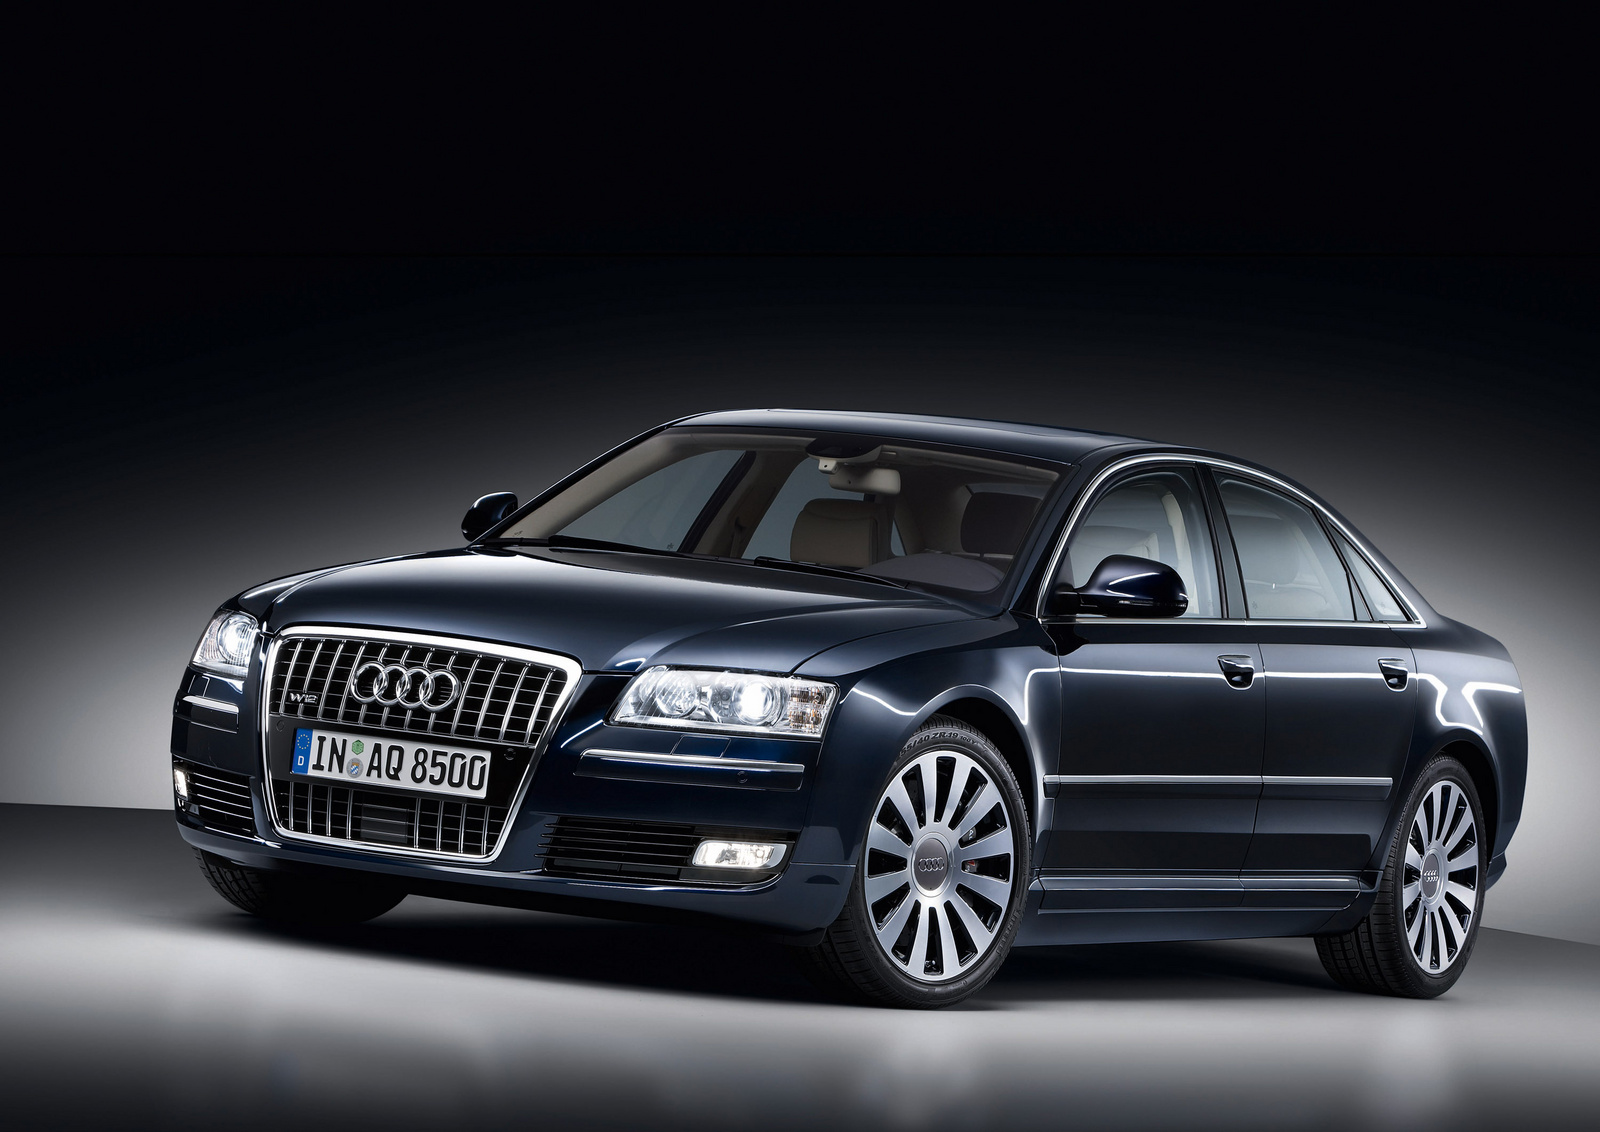 audi a8 w12 technical details history photos on better. Black Bedroom Furniture Sets. Home Design Ideas